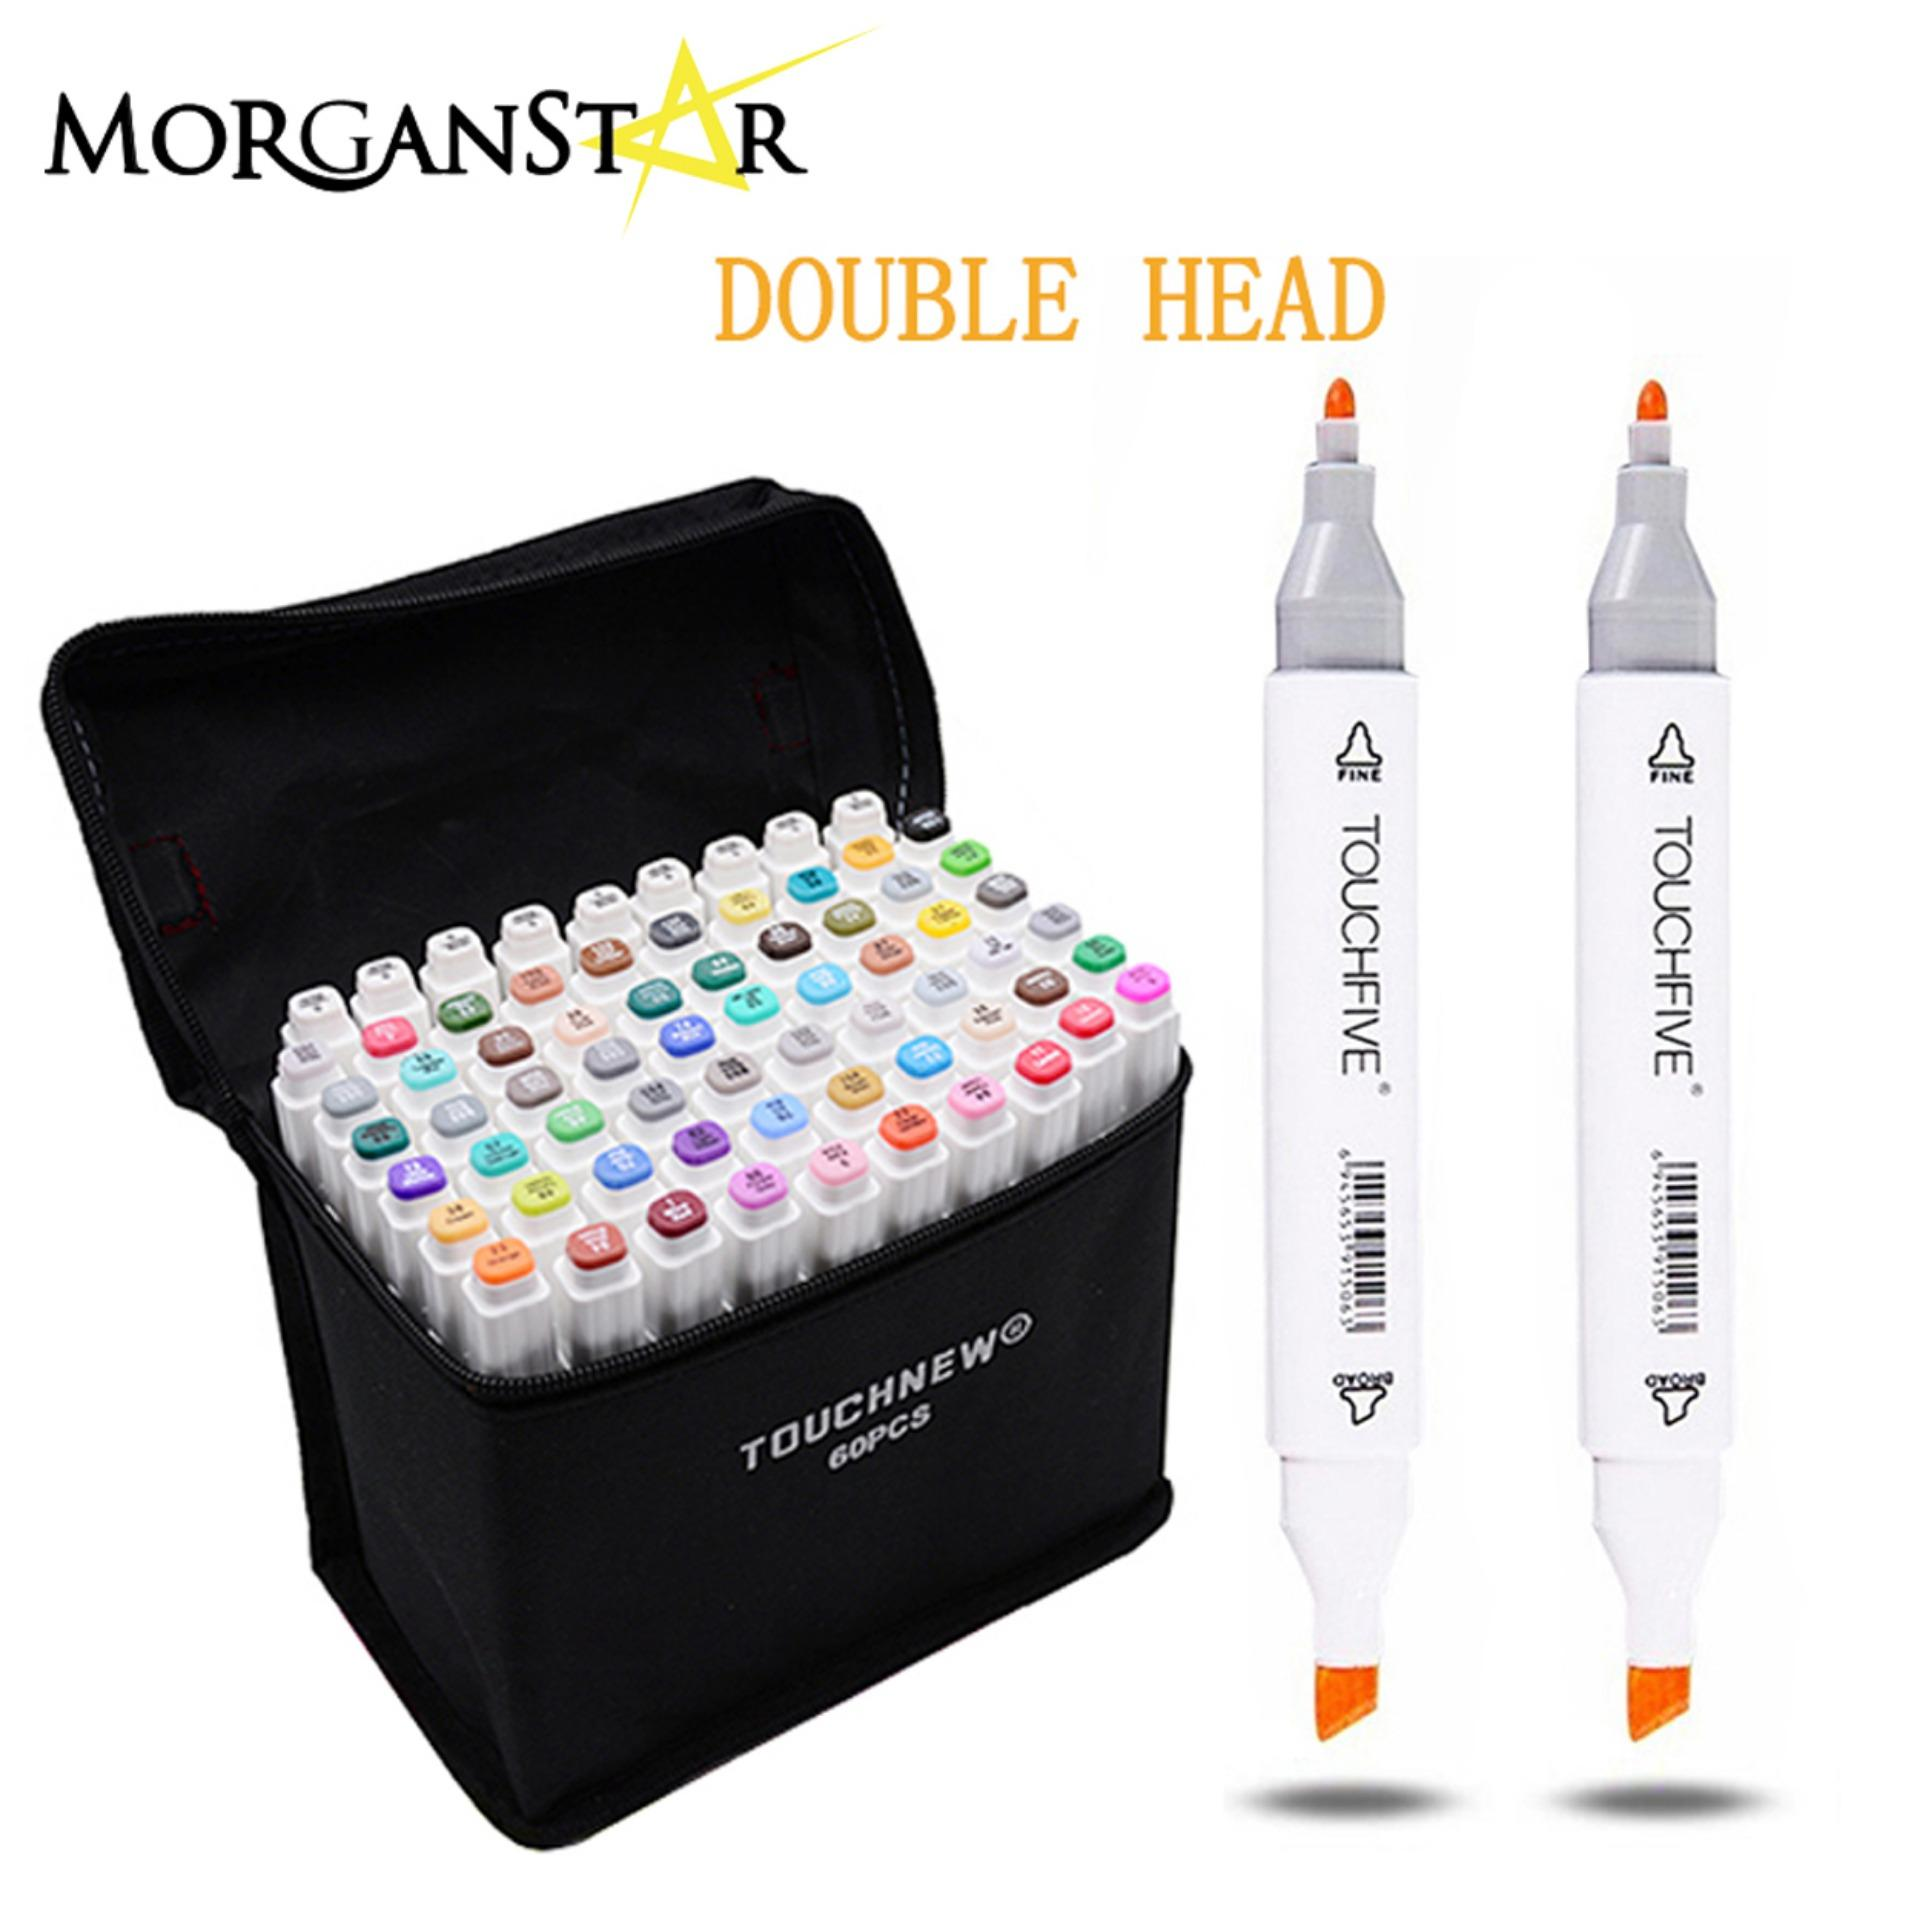 Touchfive / Touch Five Colors Graphic Art Twin Marker Point Tip Pen 36 Colors (white) By Morganstar Marketing.